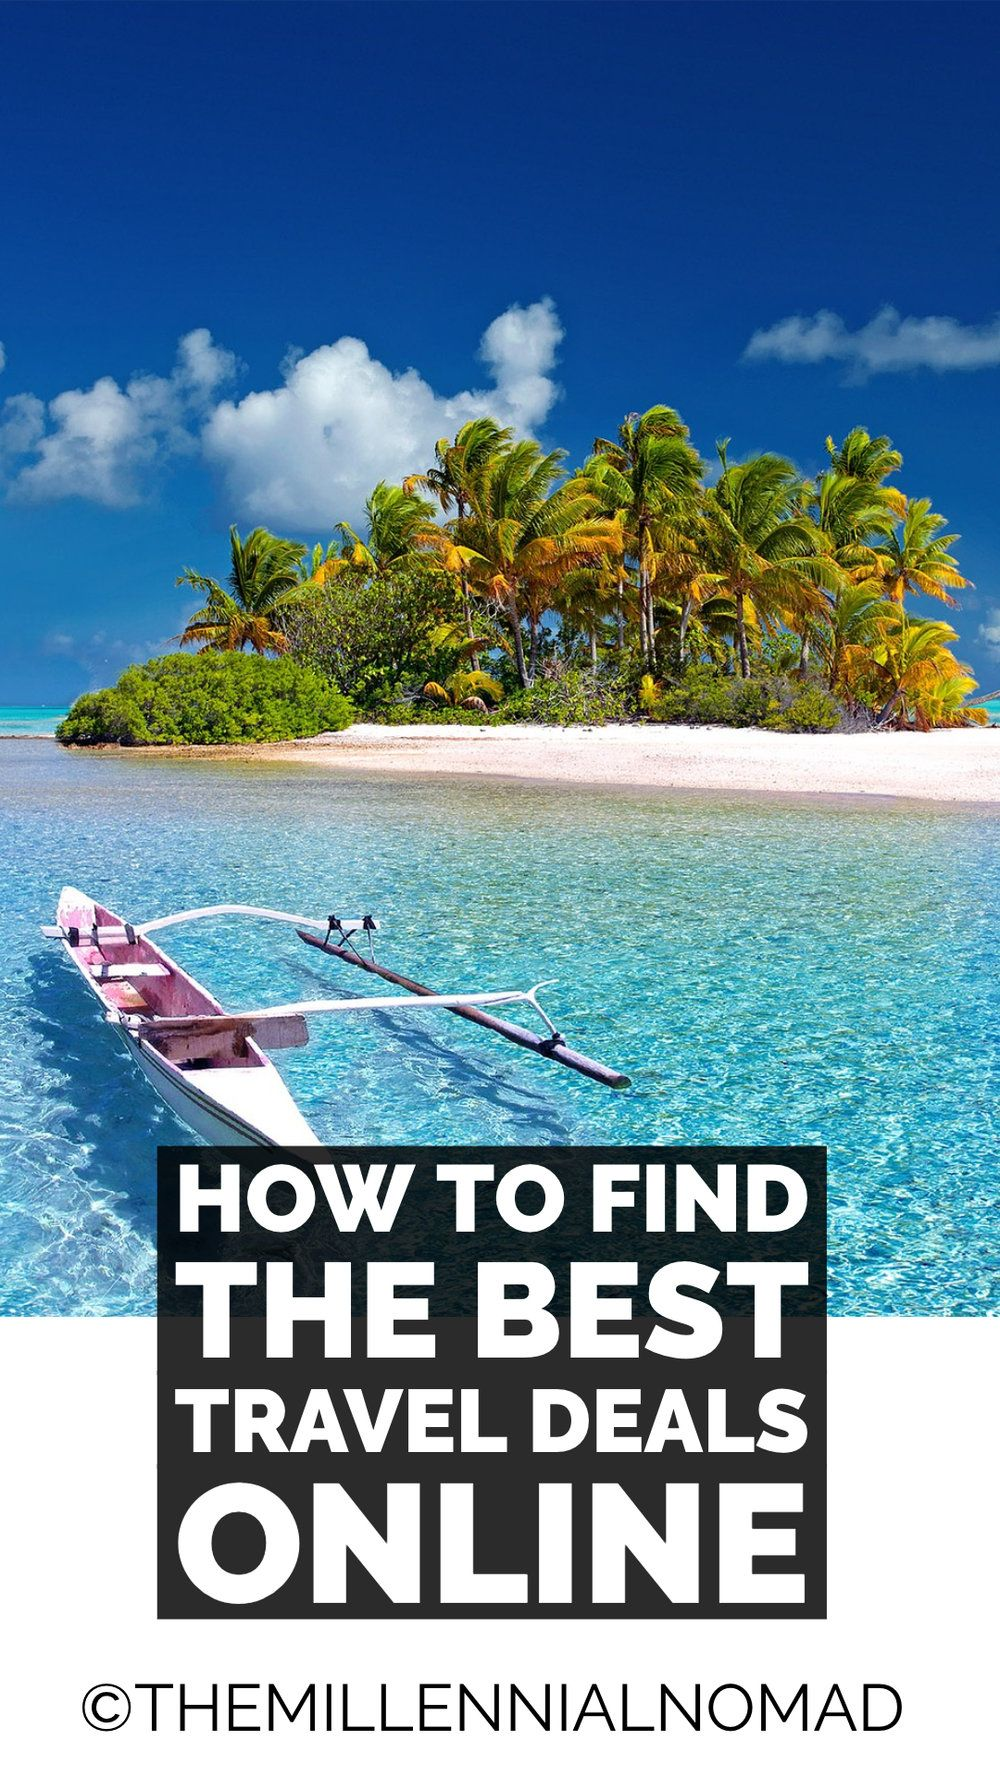 [Tripvalet] TRAVEL MORE, WORRY LESS: How To Find The Best Travel DEALS Online #travelbugs